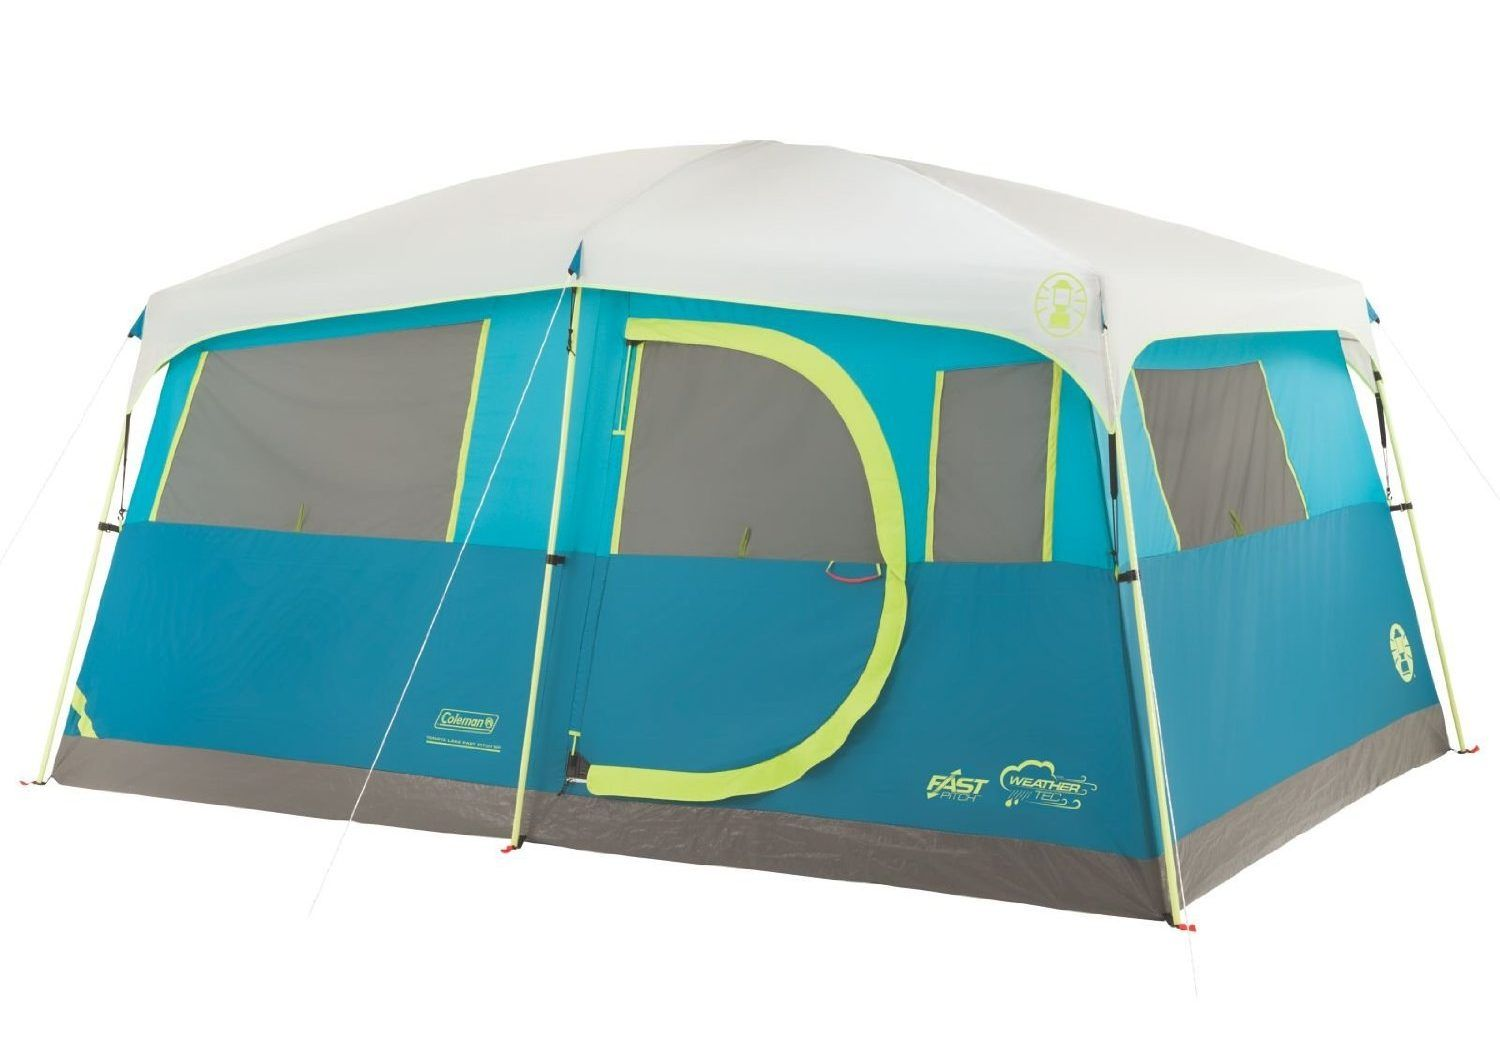 Best of Top 10 Best Instant Tents and C&ing Tents in 2017 Reviews - Buyers Guide  sc 1 st  Pinterest & Best of Top 10 Best Instant Tents and Camping Tents in 2017 ...